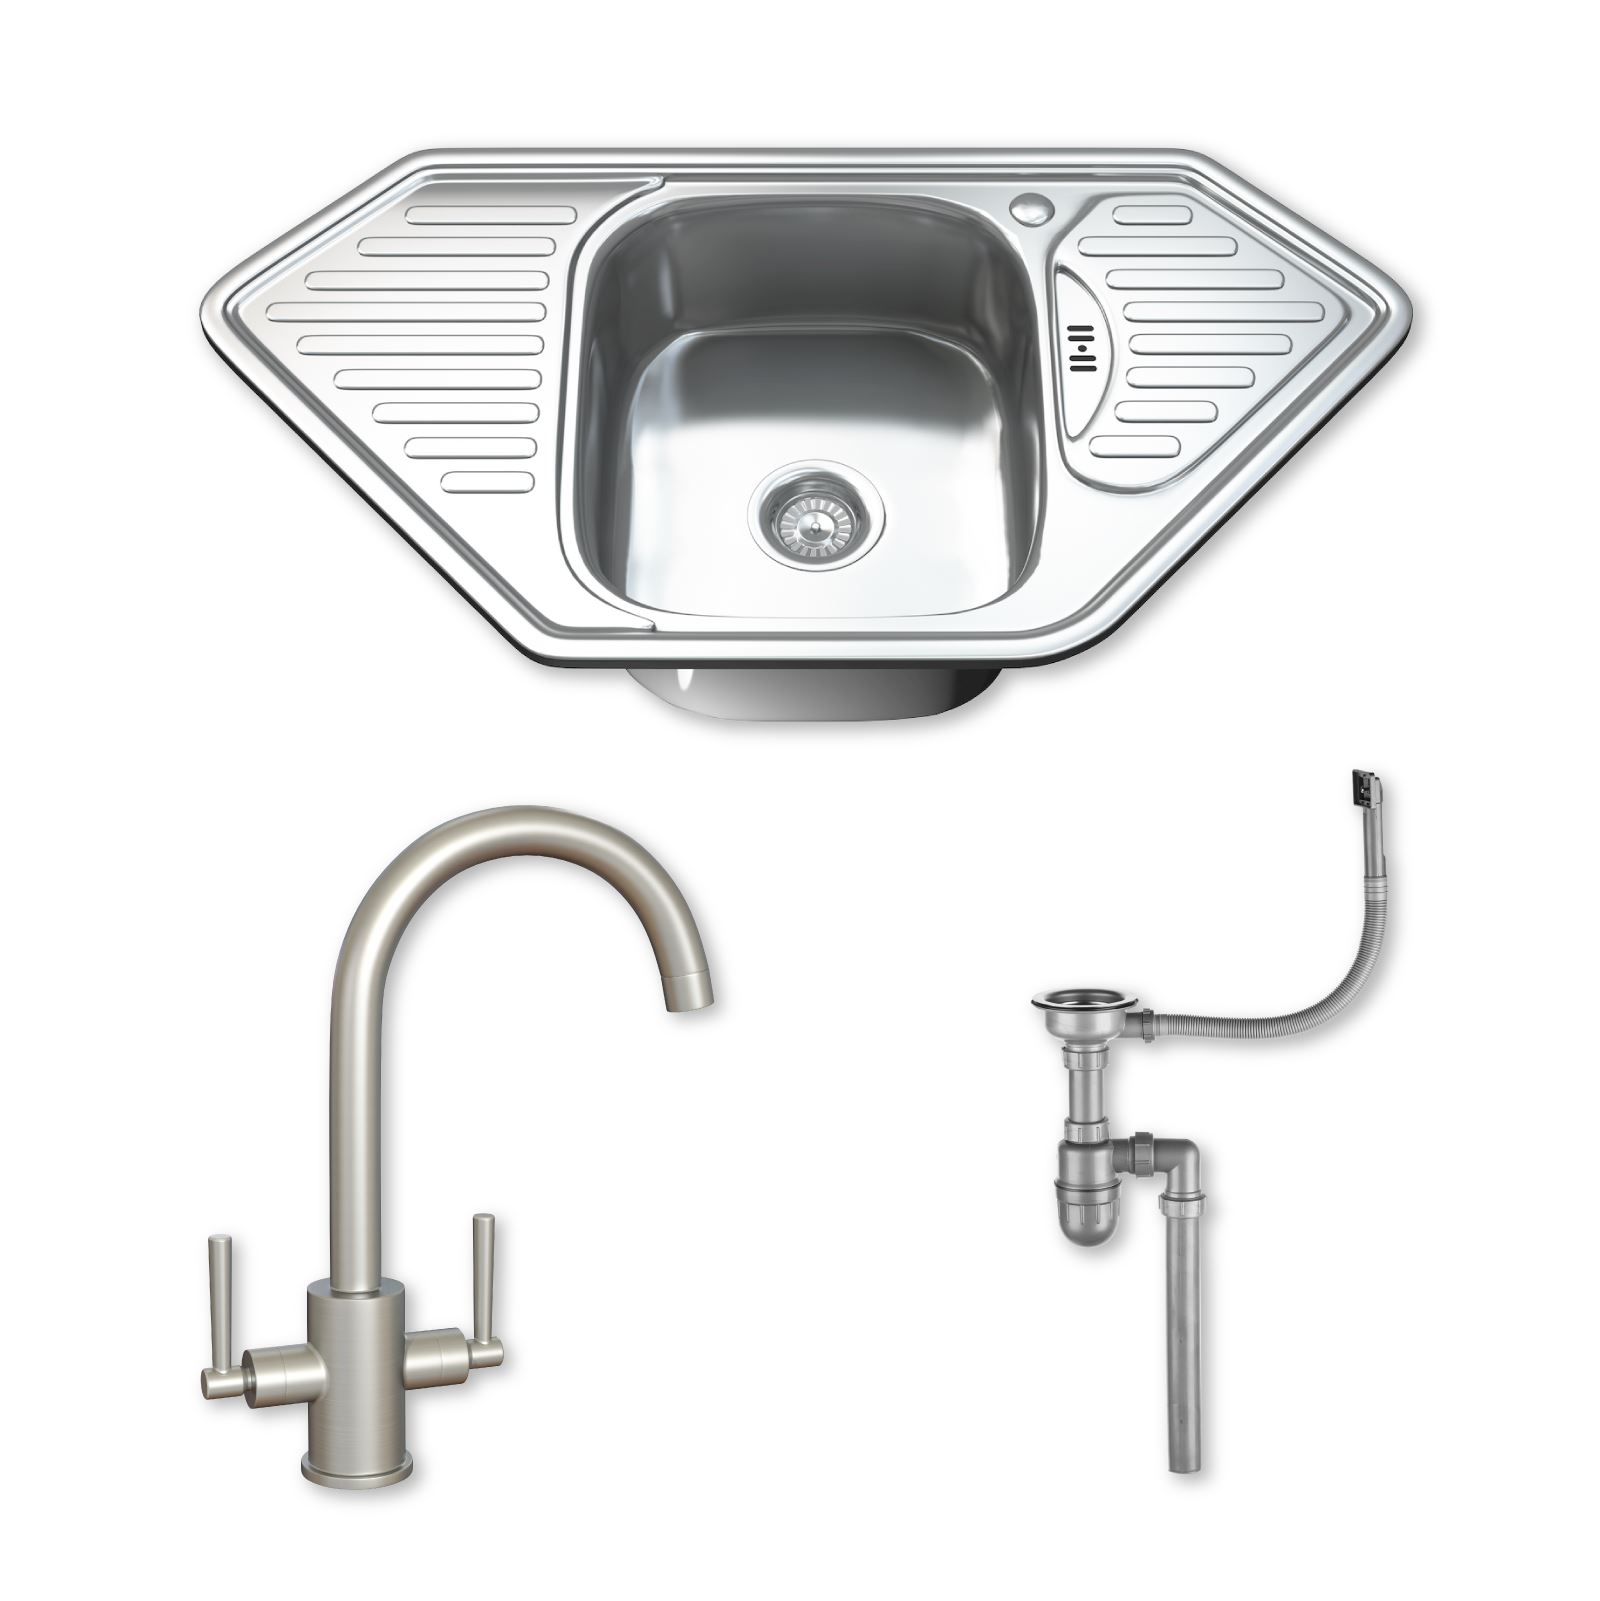 Stainless Corner Sink : Details about 1.0 Single Corner Bowl Stainless Steel Kitchen Sink, Tap ...